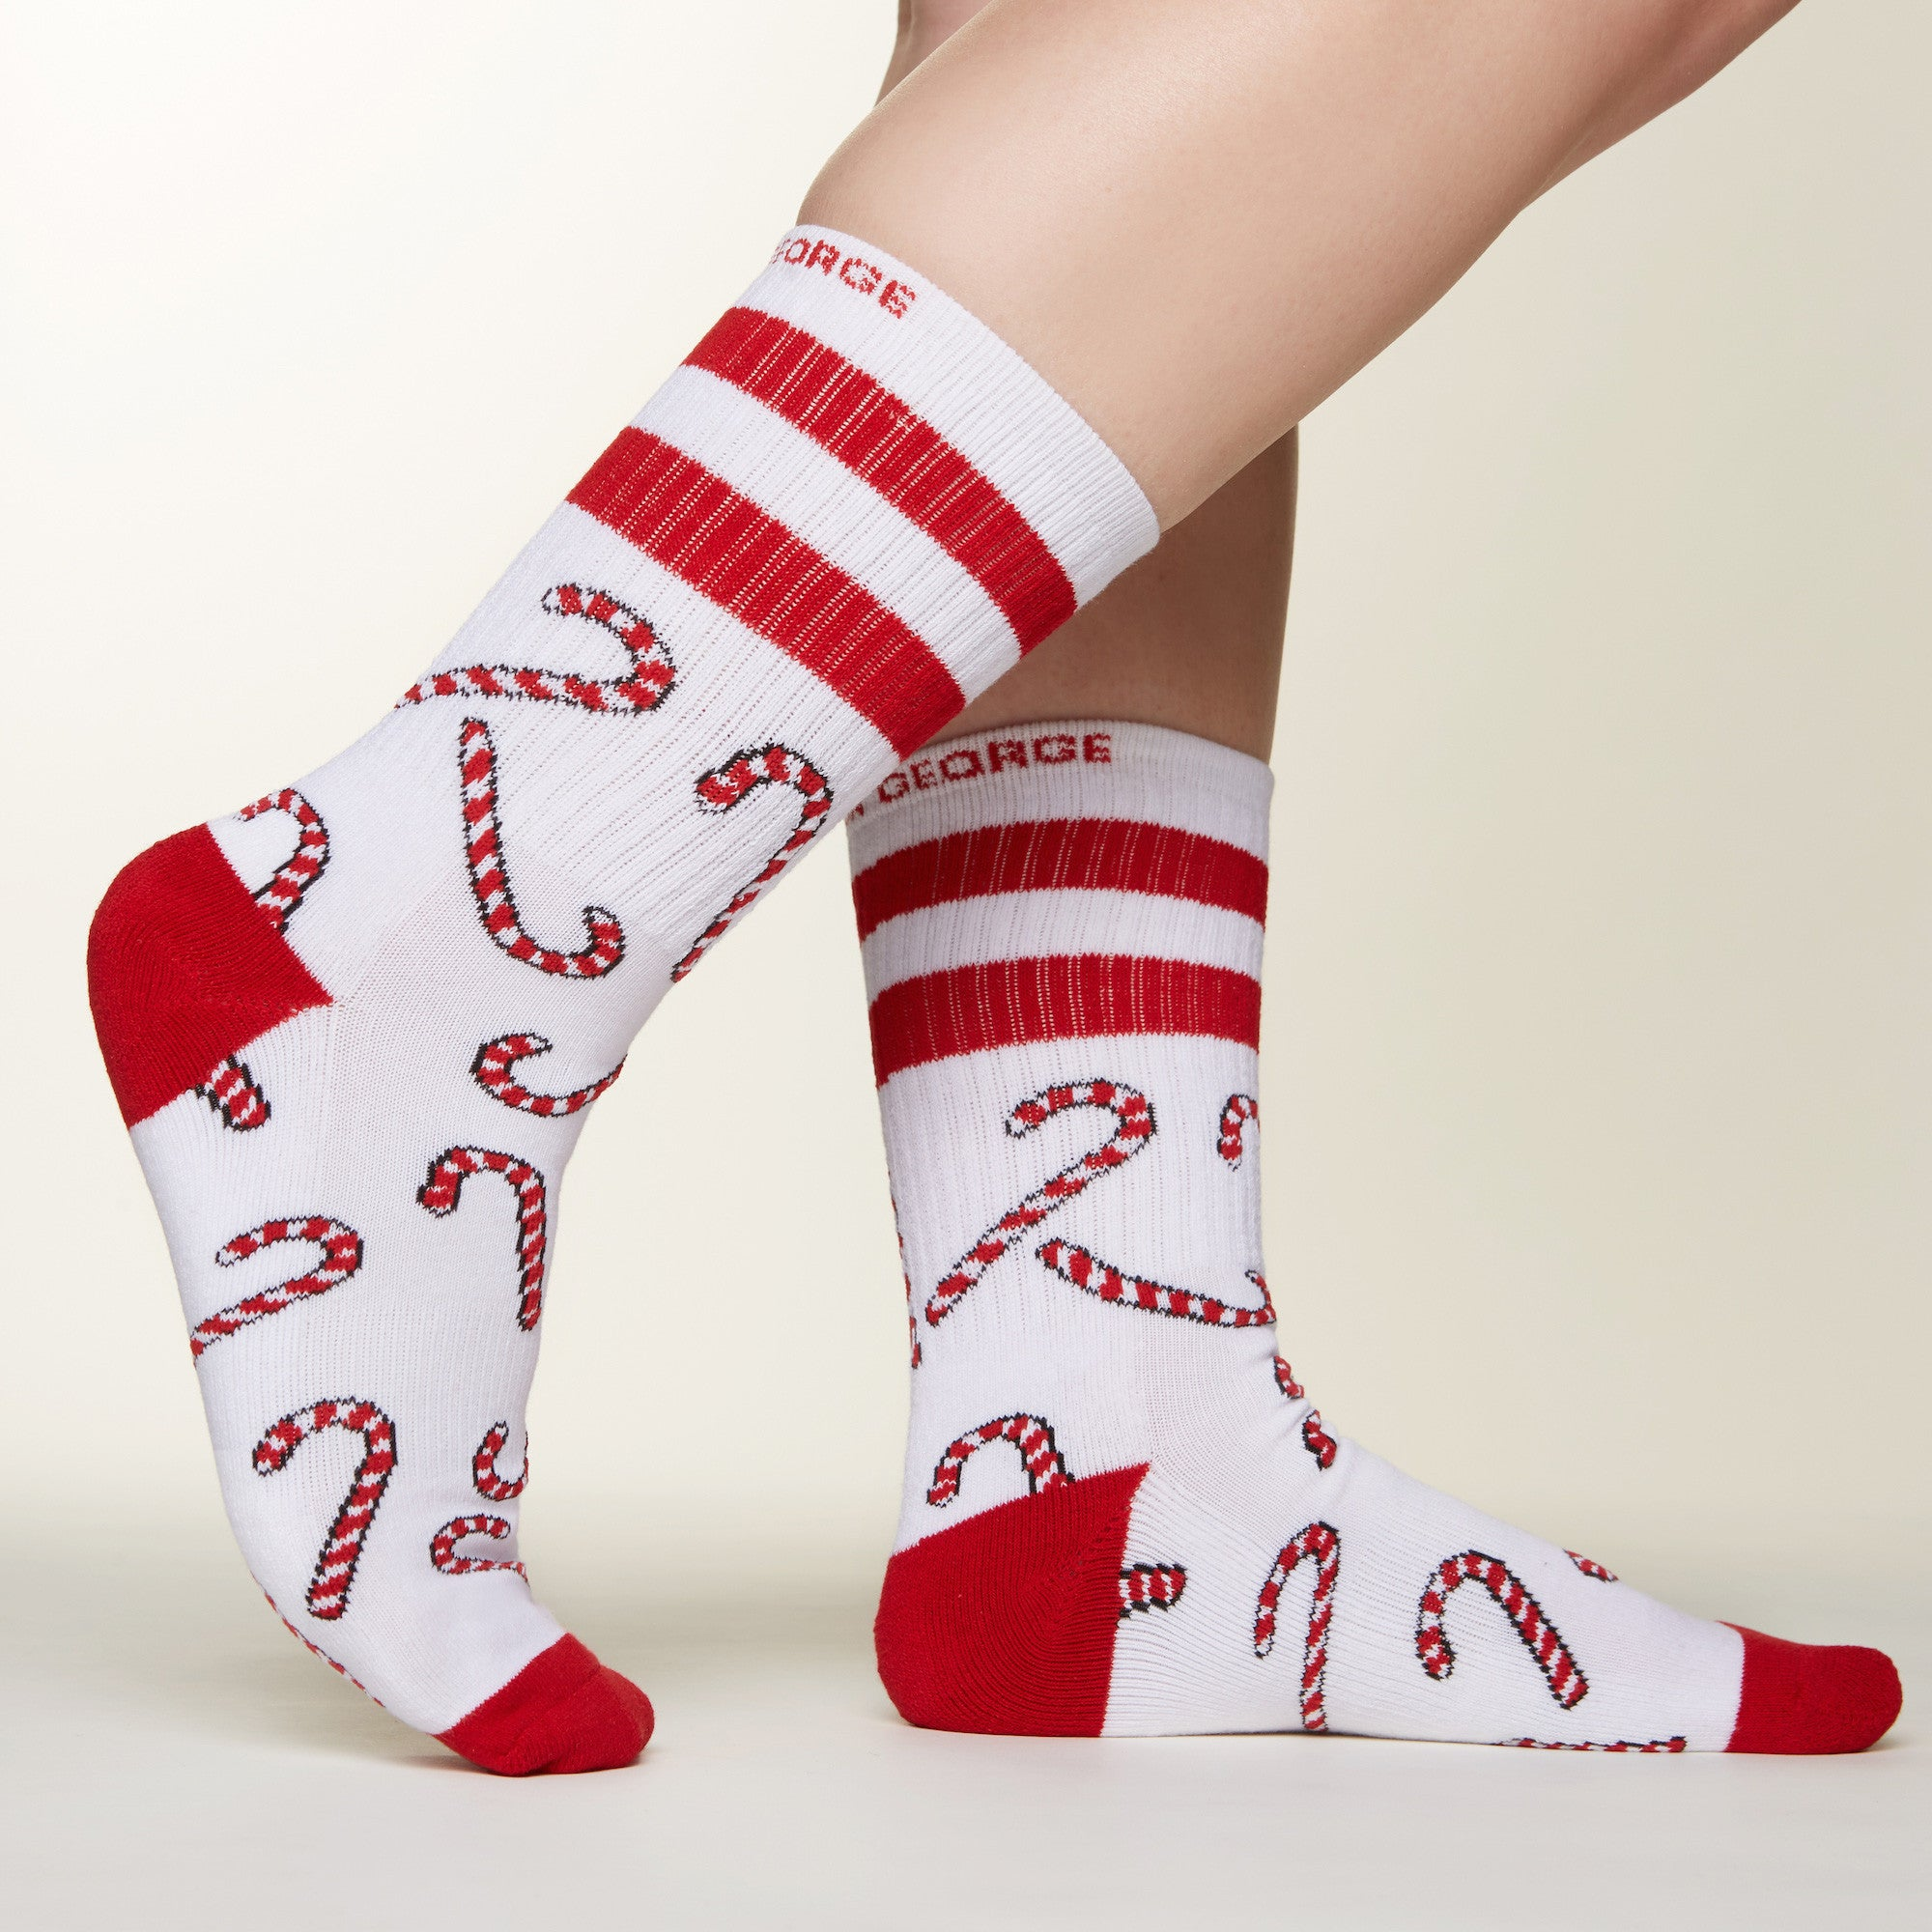 Candy Cane socks side profile view